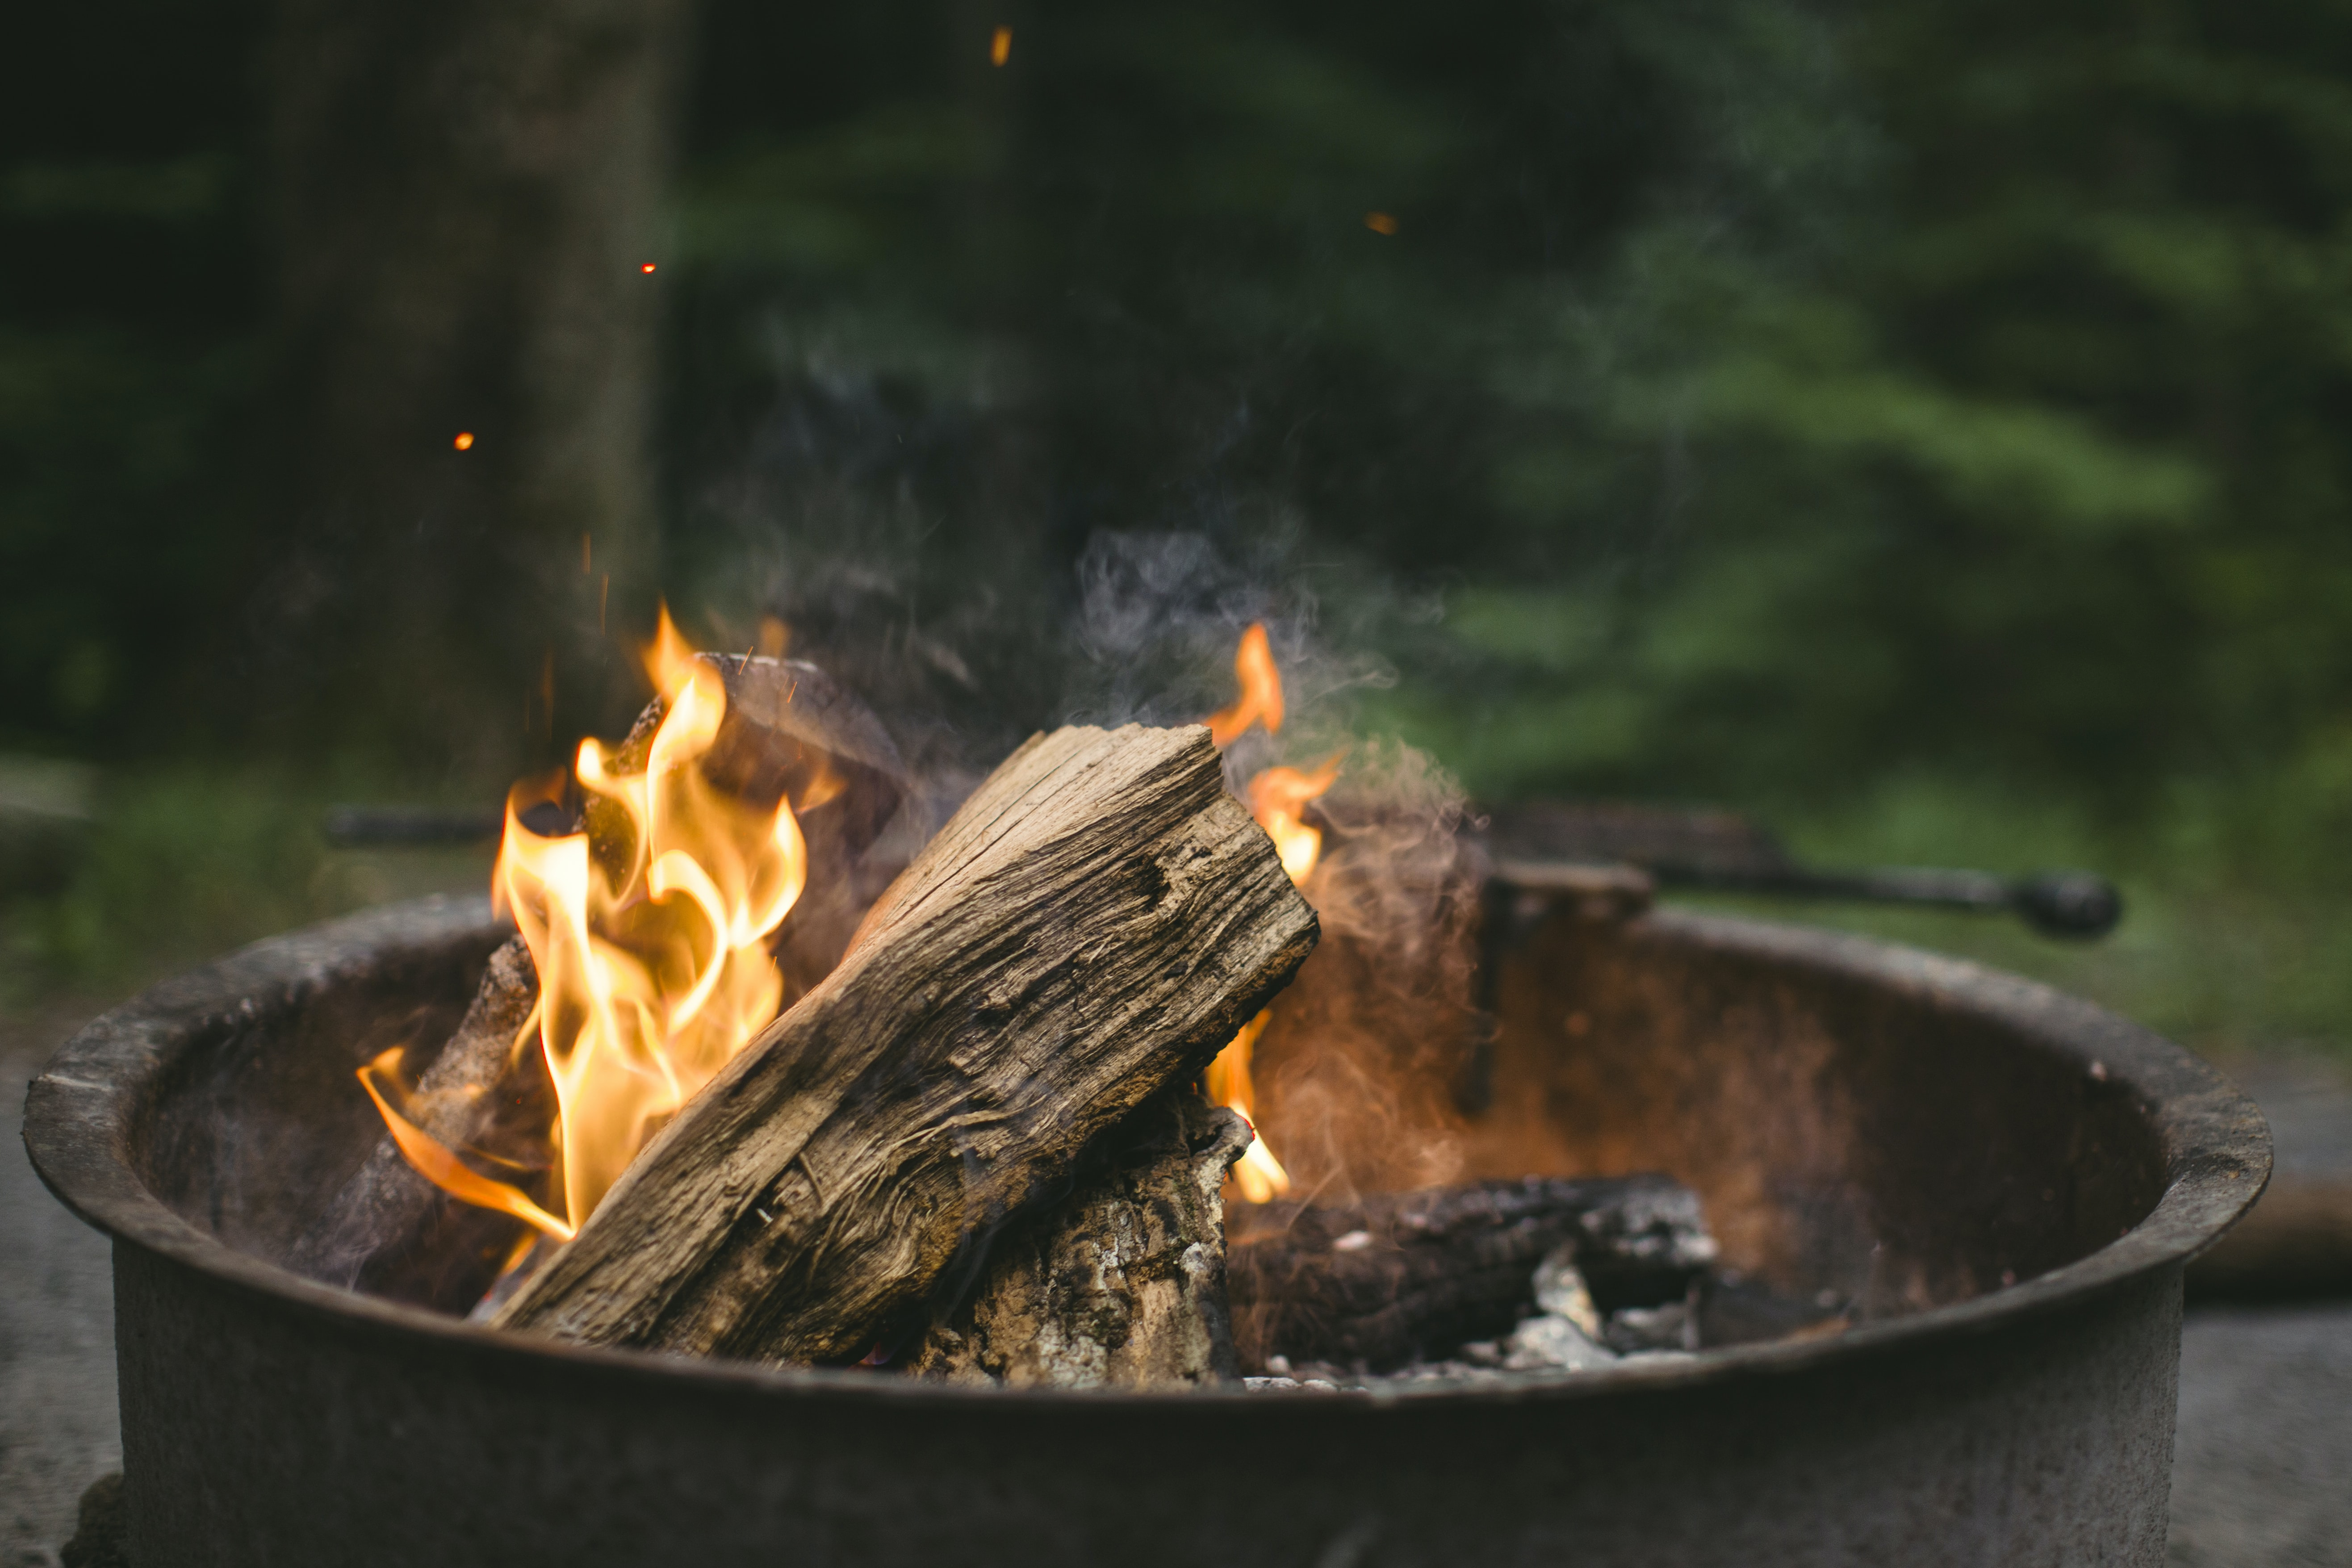 Close-up of burning firewood in a black caldron